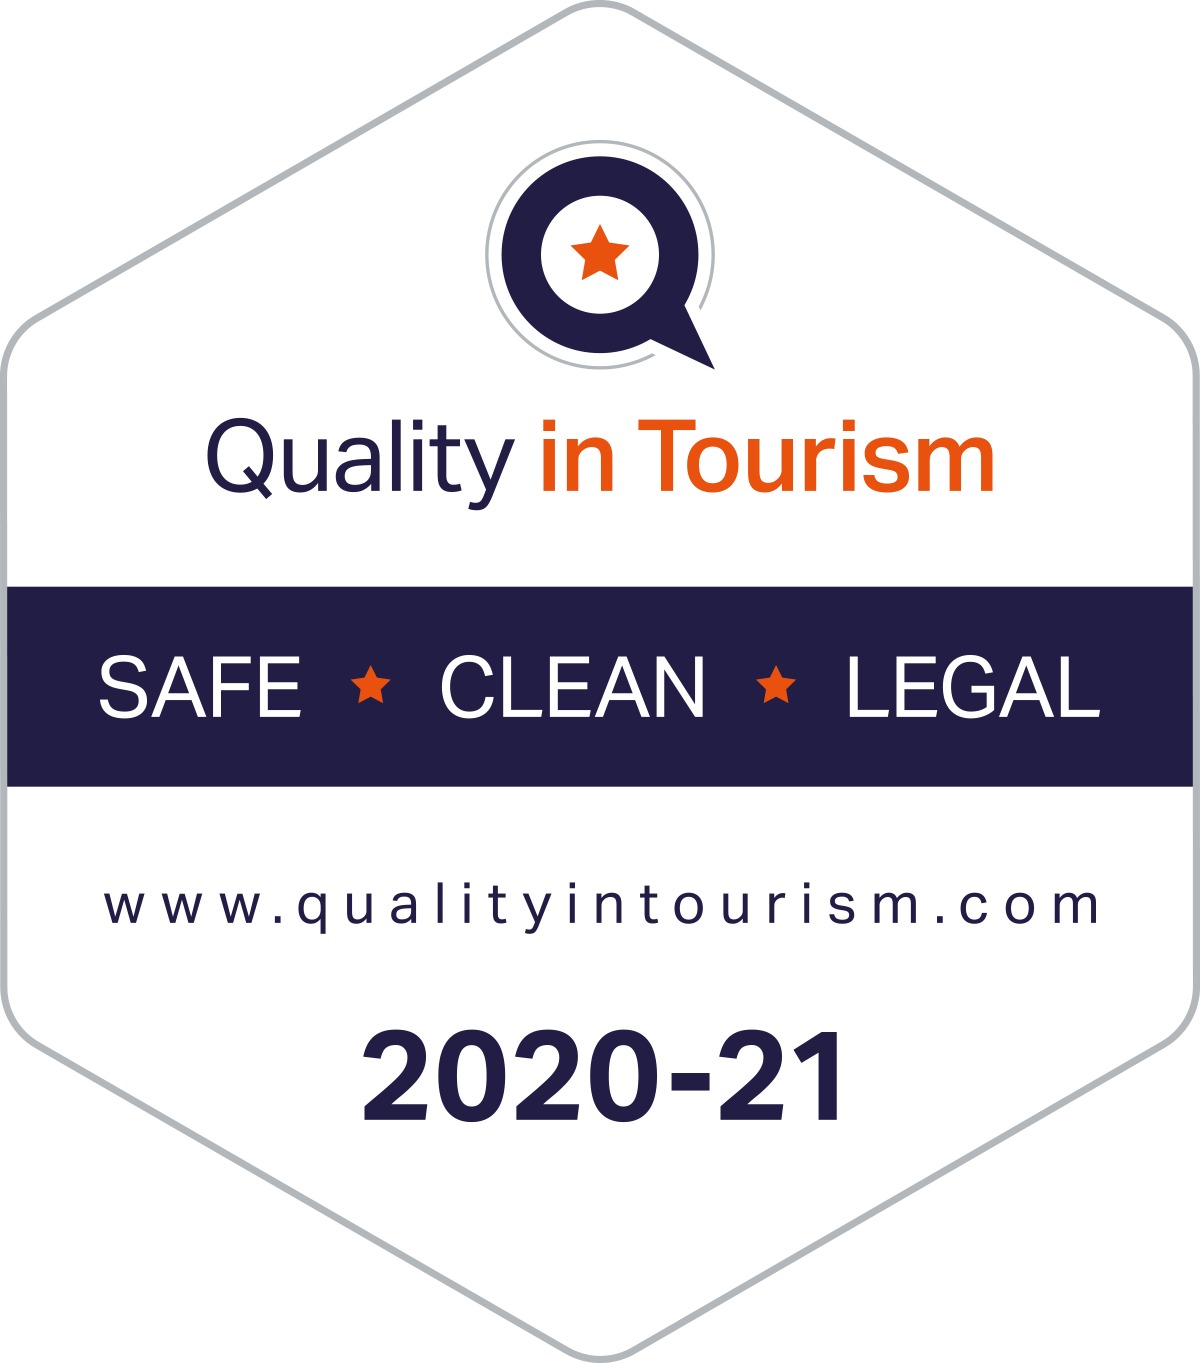 Quality in Tourism 2020 and 2021 safe, clean and legal badge